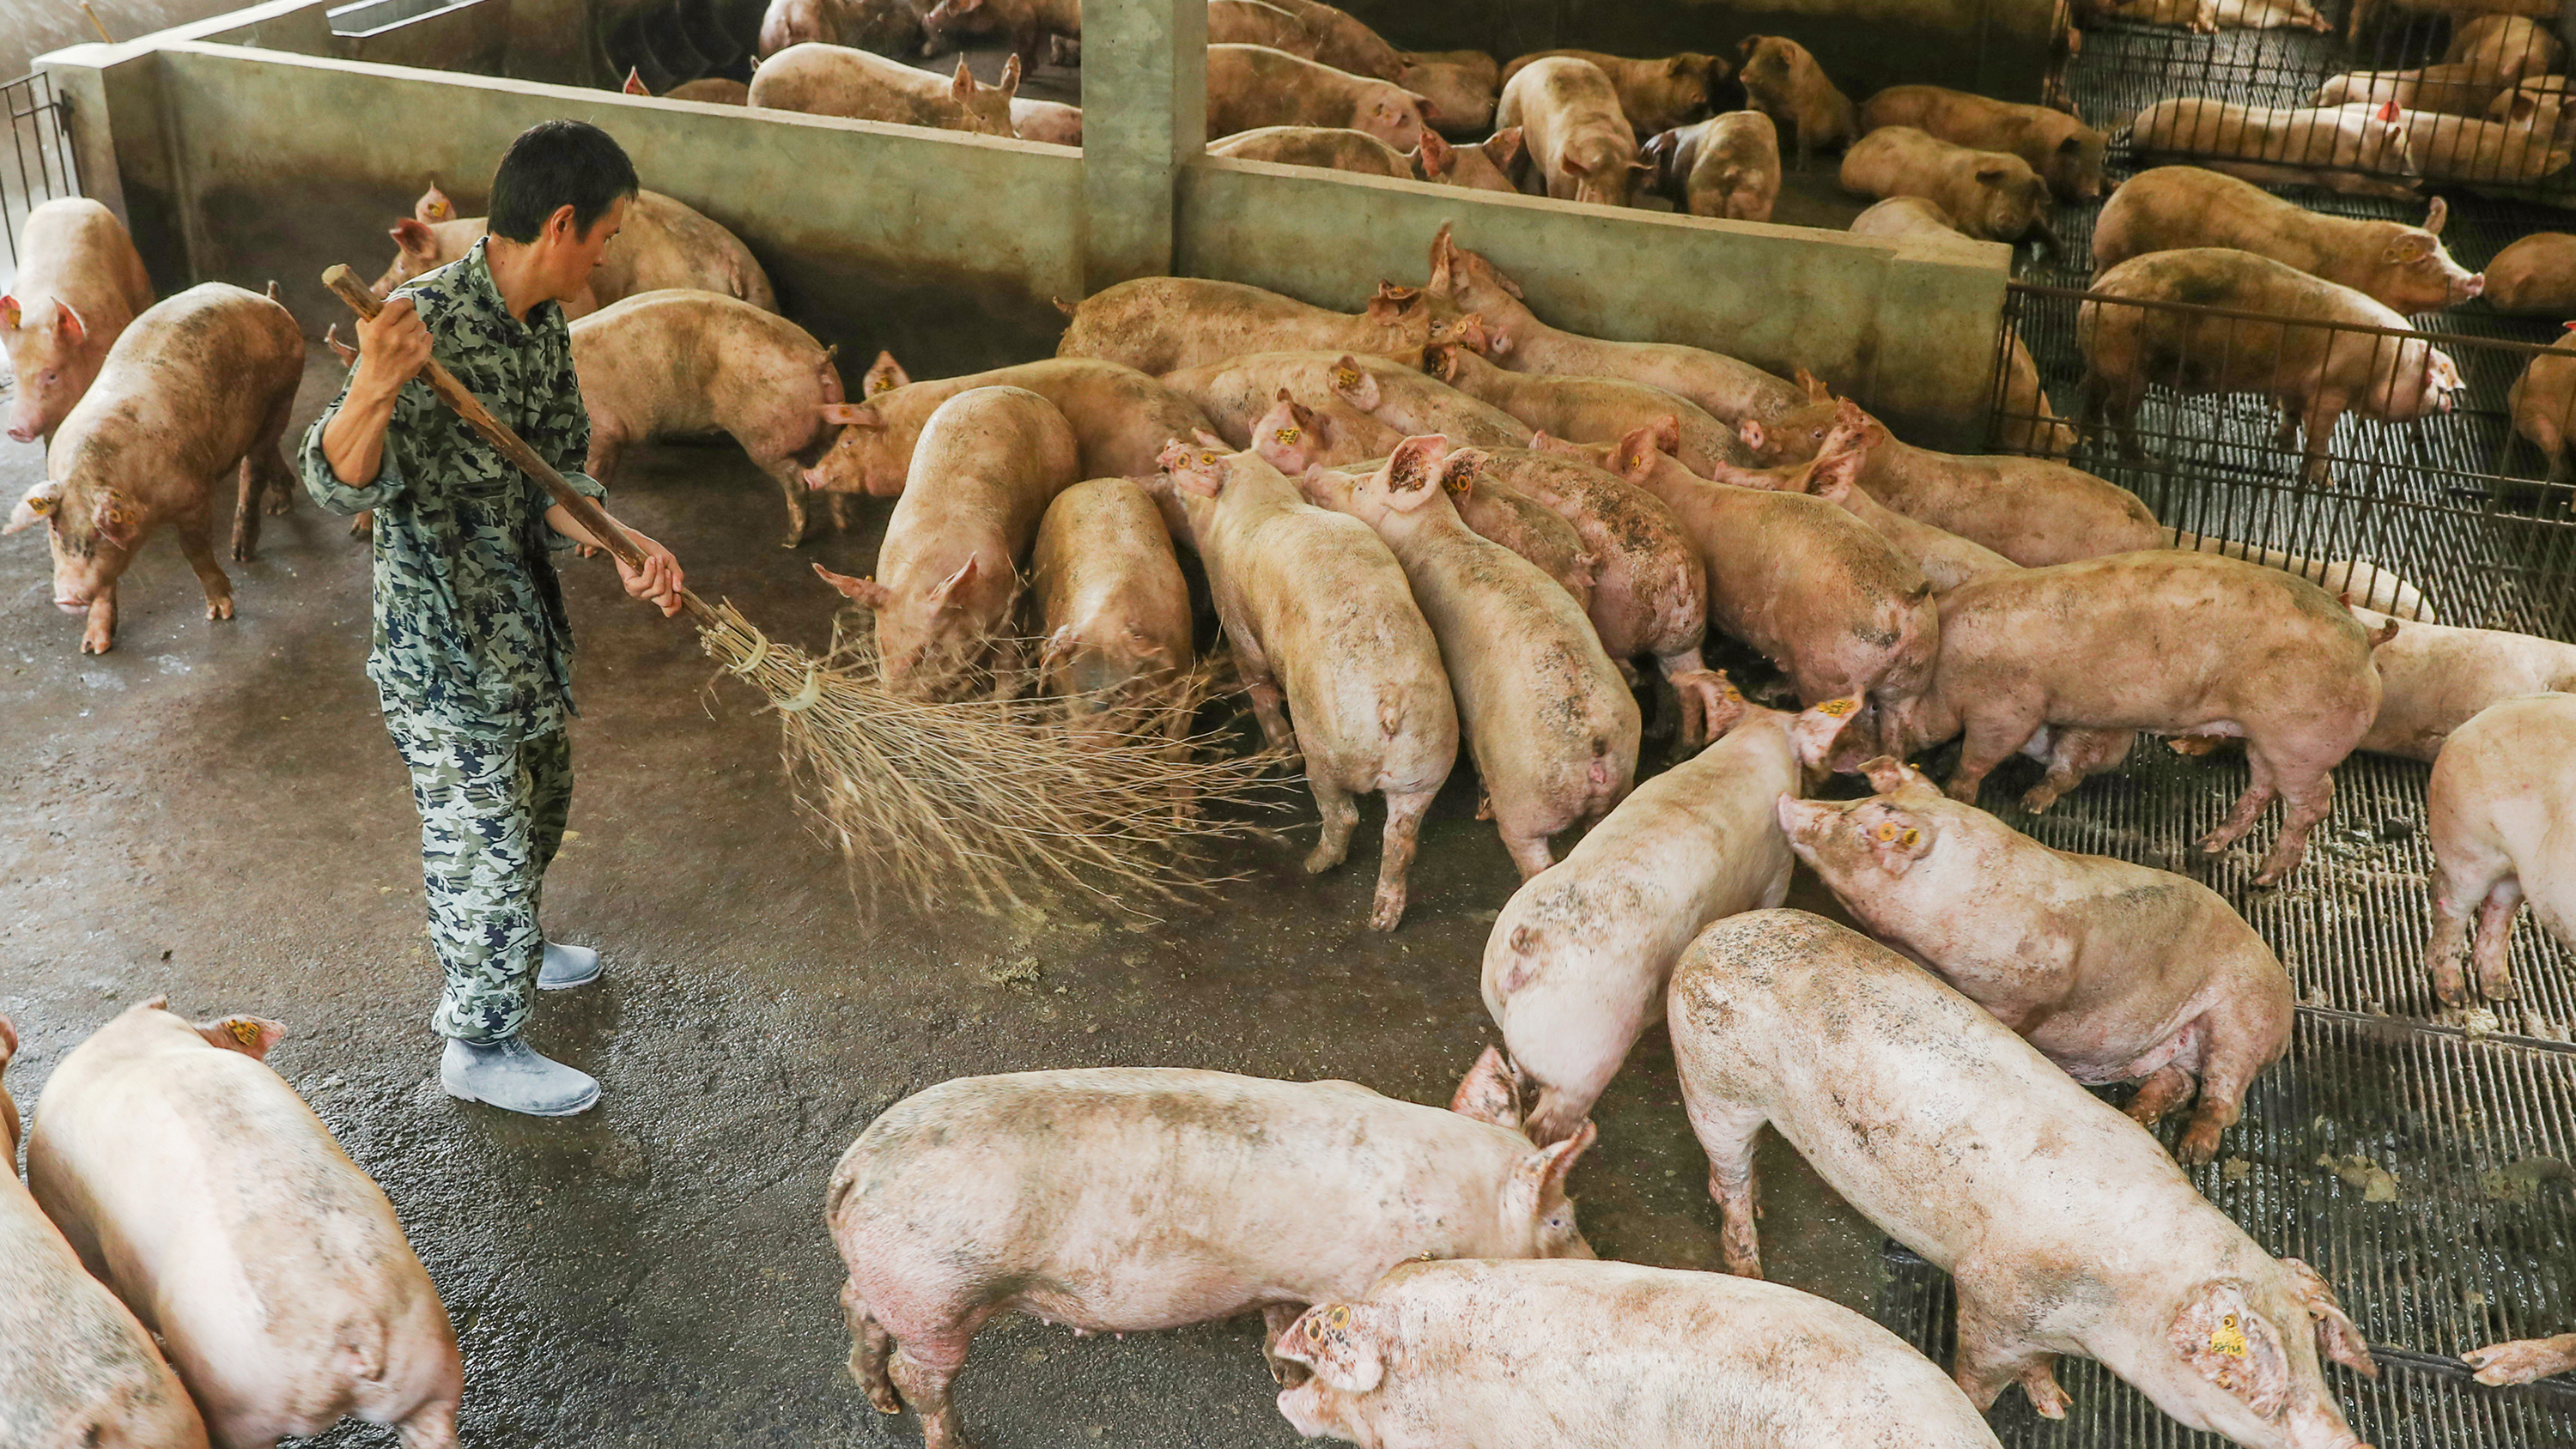 GUANG AN, CHINA - AUGUST 27: A worker cleans up a pigsty at a pig farm on August 9, 2019 in Guang an, Sichuan Province of China. China's consumer price index (CPI) rose 2.8 percent year-on-year in July, according to the data released by National Bureau of Statistics (NBS) on Friday. (Photo by Qiu Haiying/VCG via Getty Images)